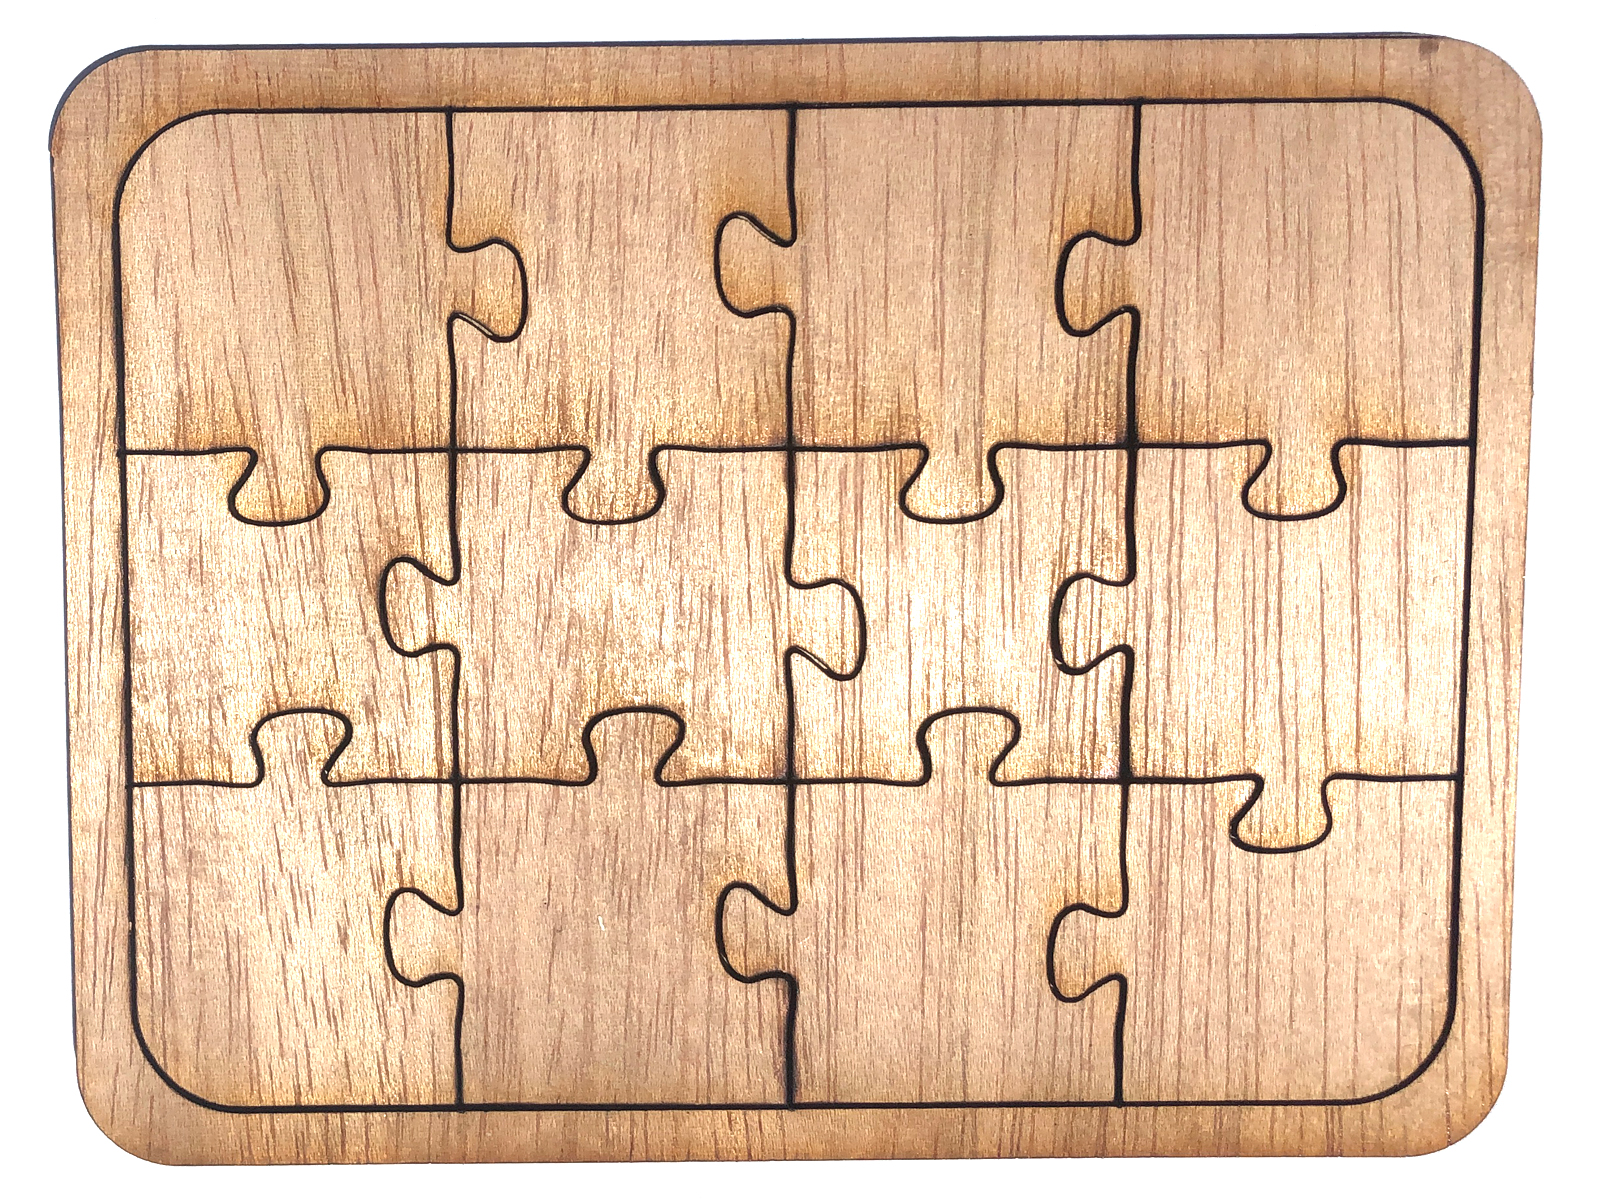 We make Blank JigSaw Puzzles (DIY) - You can create your own beautiful art work on this Jigsaw puzzle. You can paint or use markers. It will become a one of a kind masterpiece.